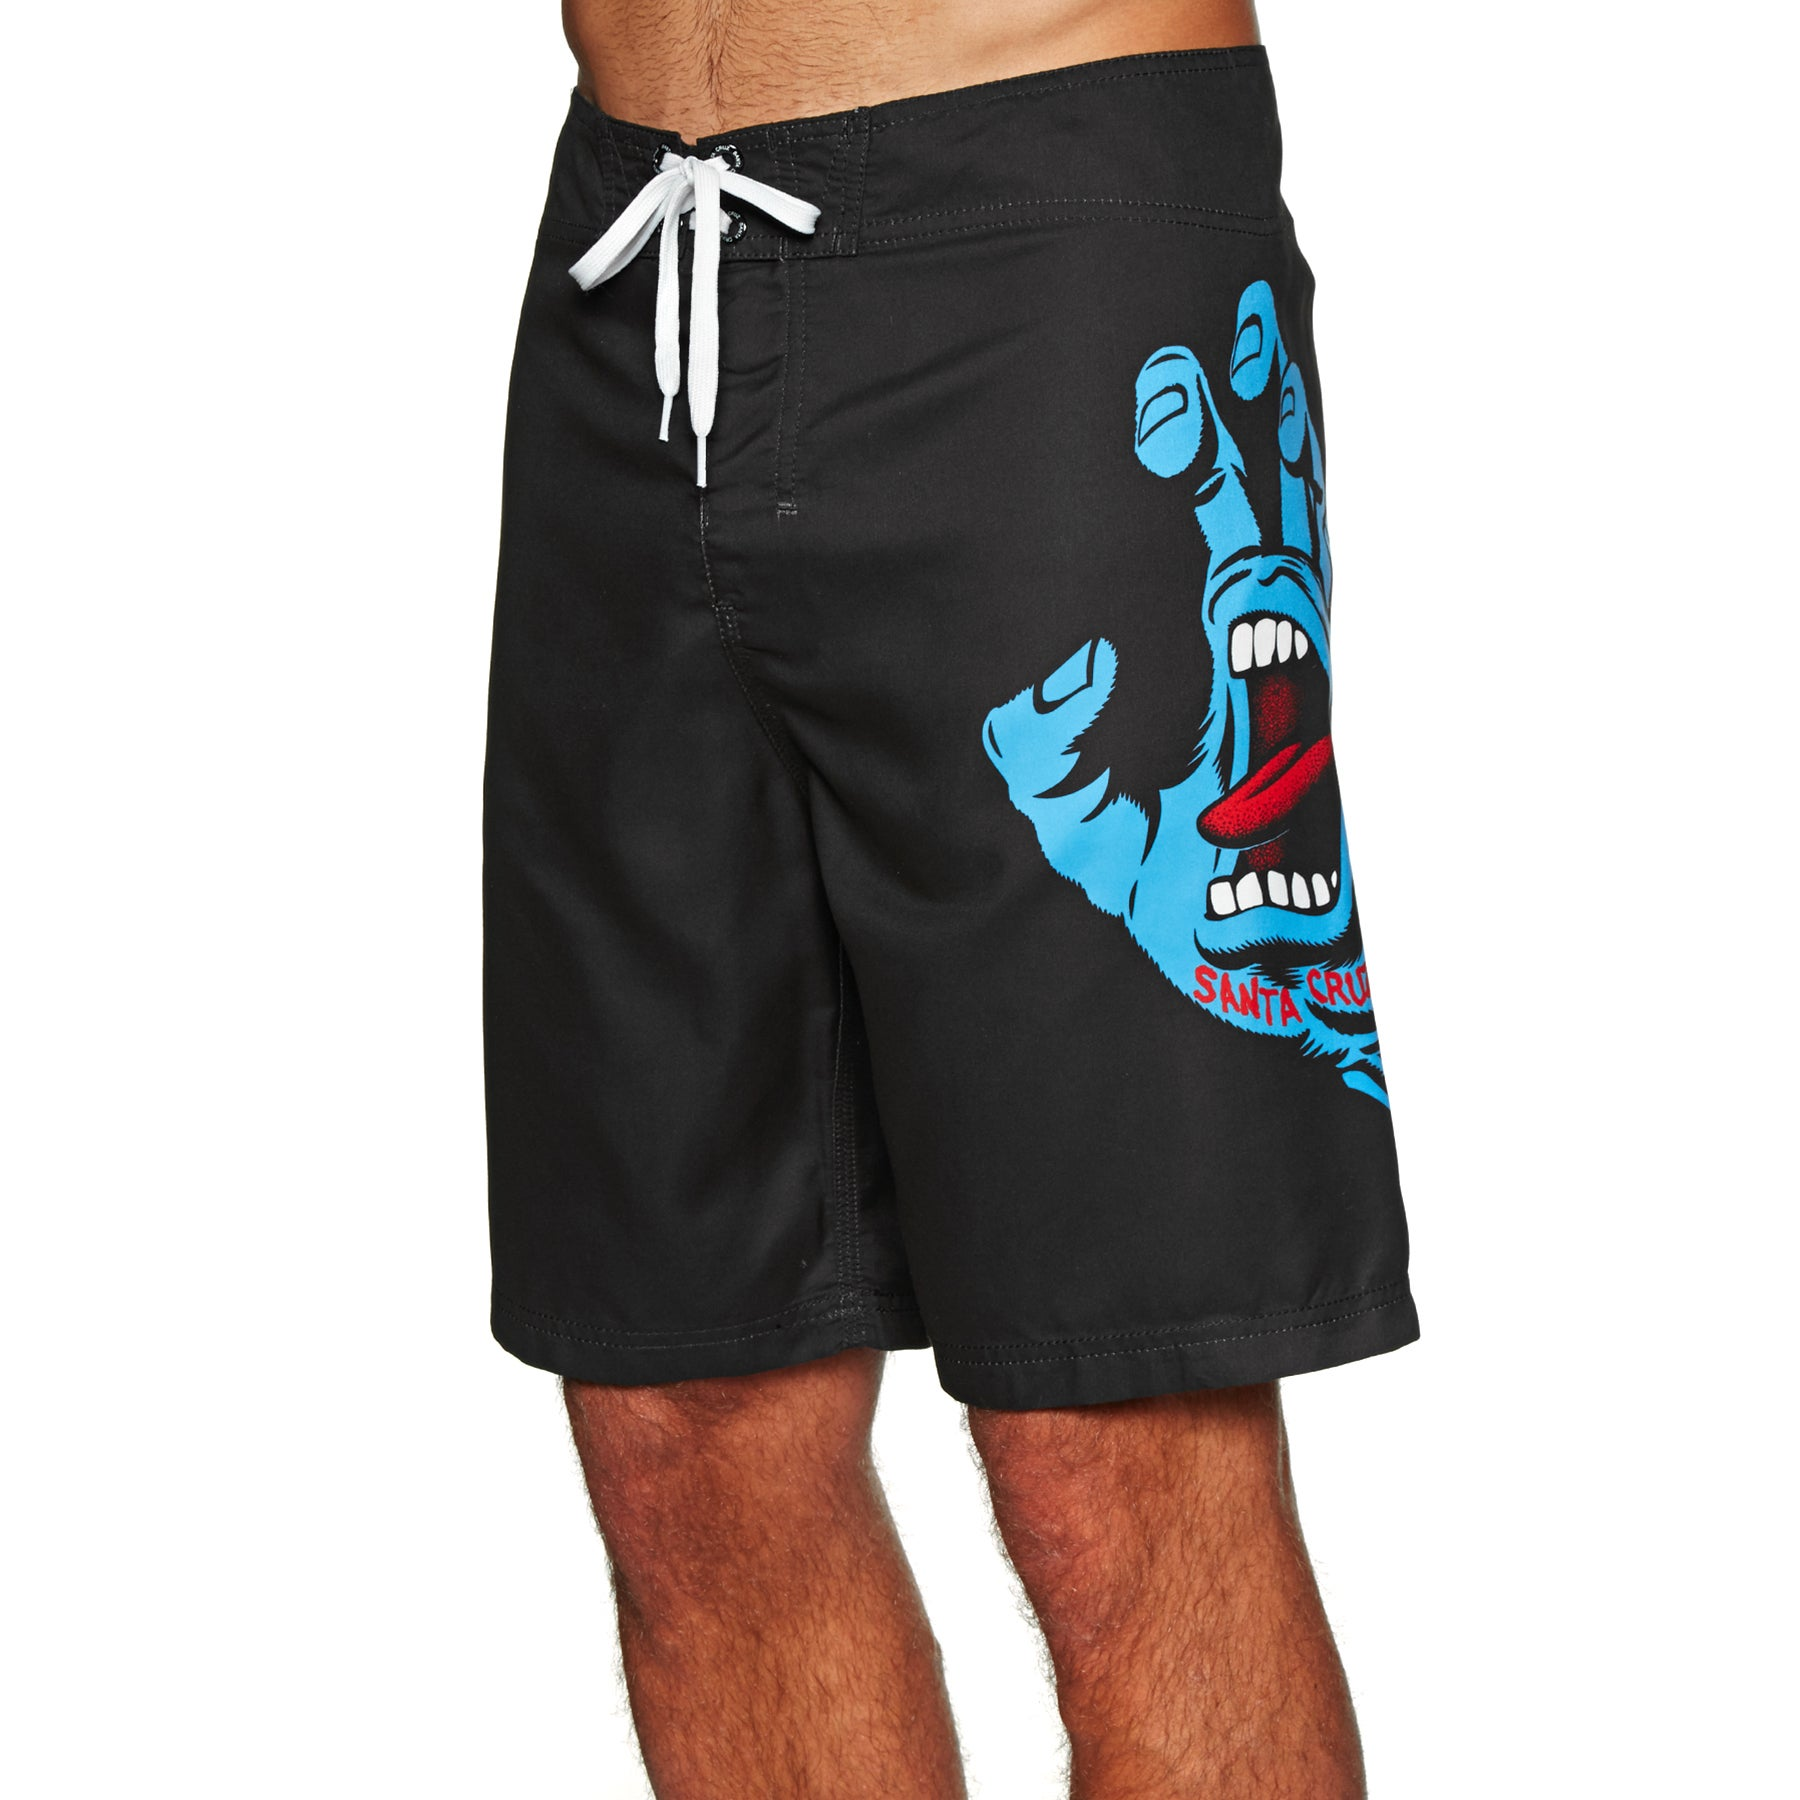 Santa Cruz Screaming Hand Boardshorts